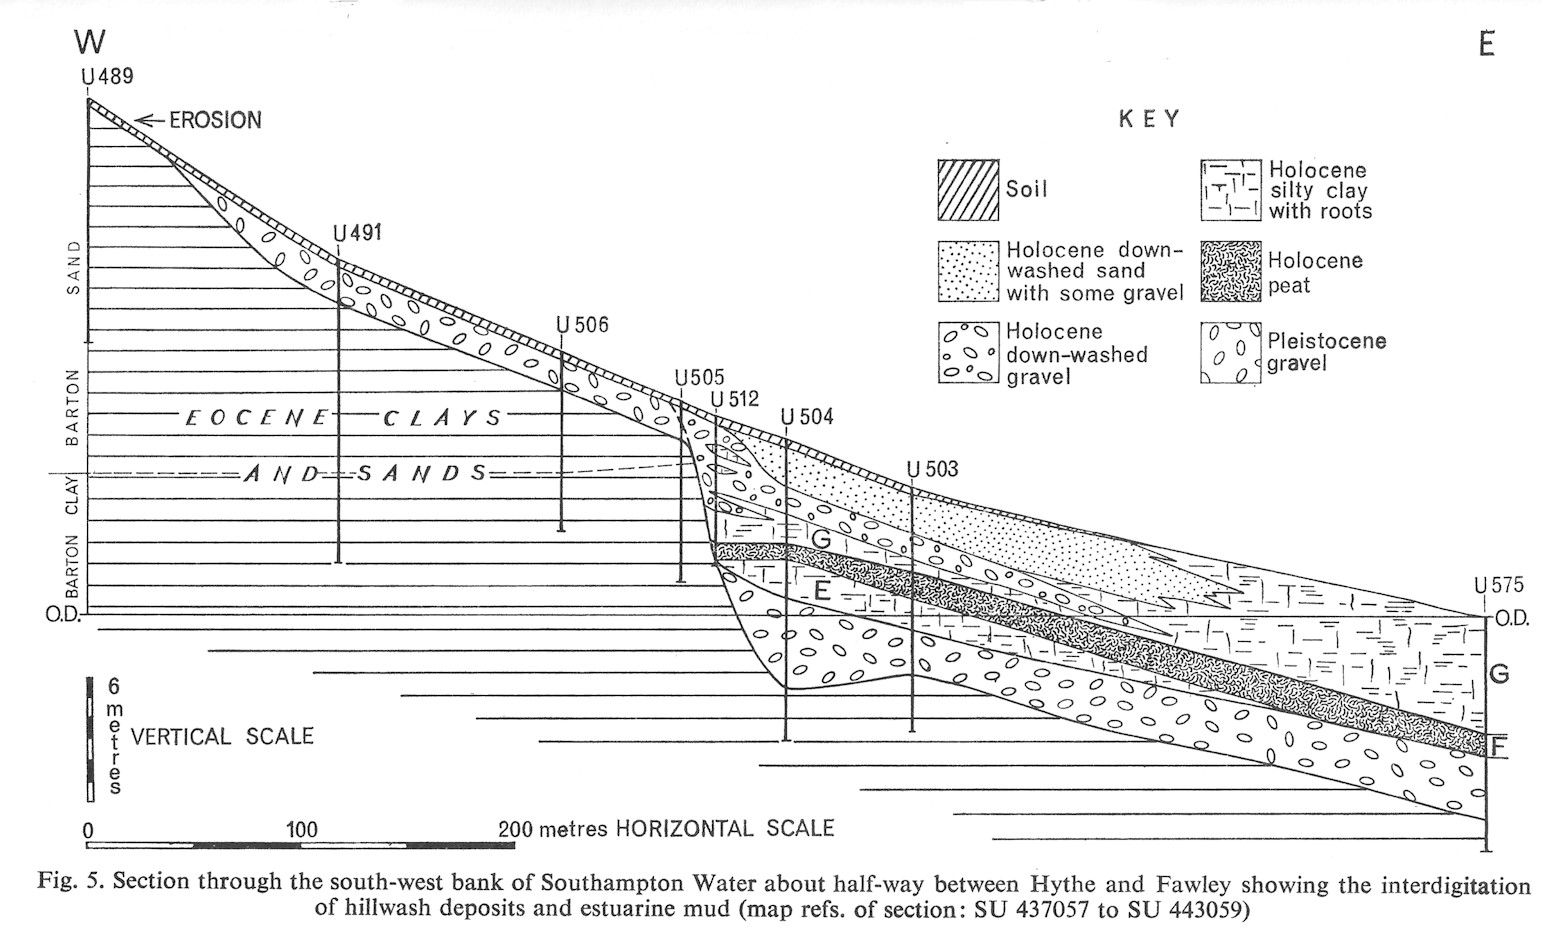 Fig 5 of Hodson and West, 1972, hillwash and estuarine mud deposits between Hythe and Fawley, Solent Estuaries, southern England